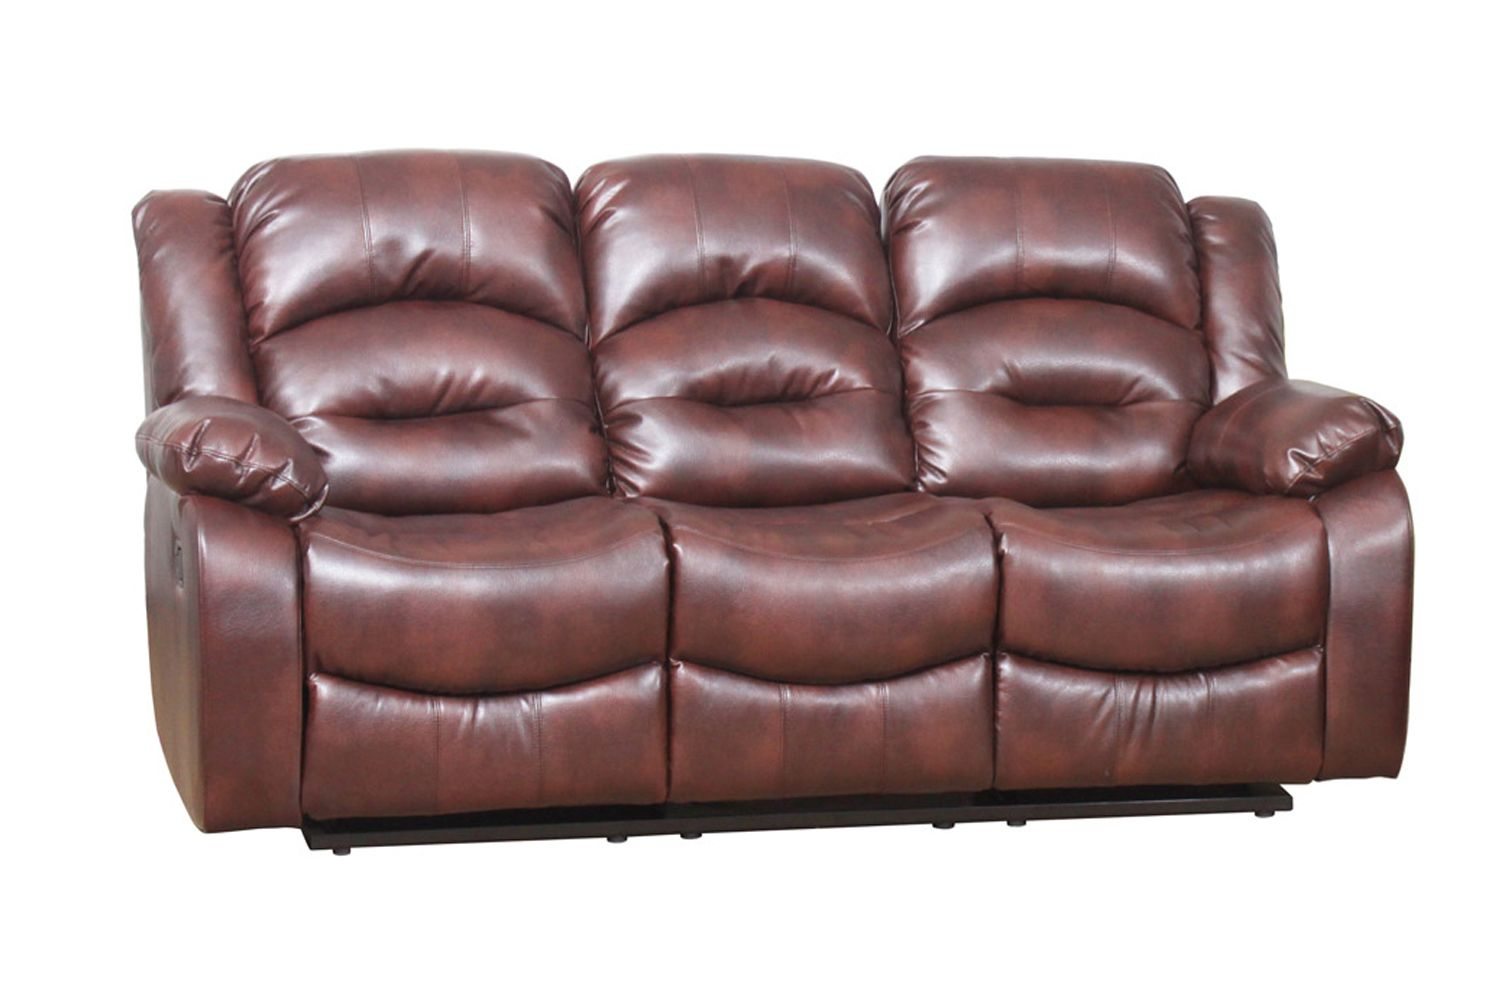 harveys 3 seater recliner sofa beds marbella spain leather baci living room